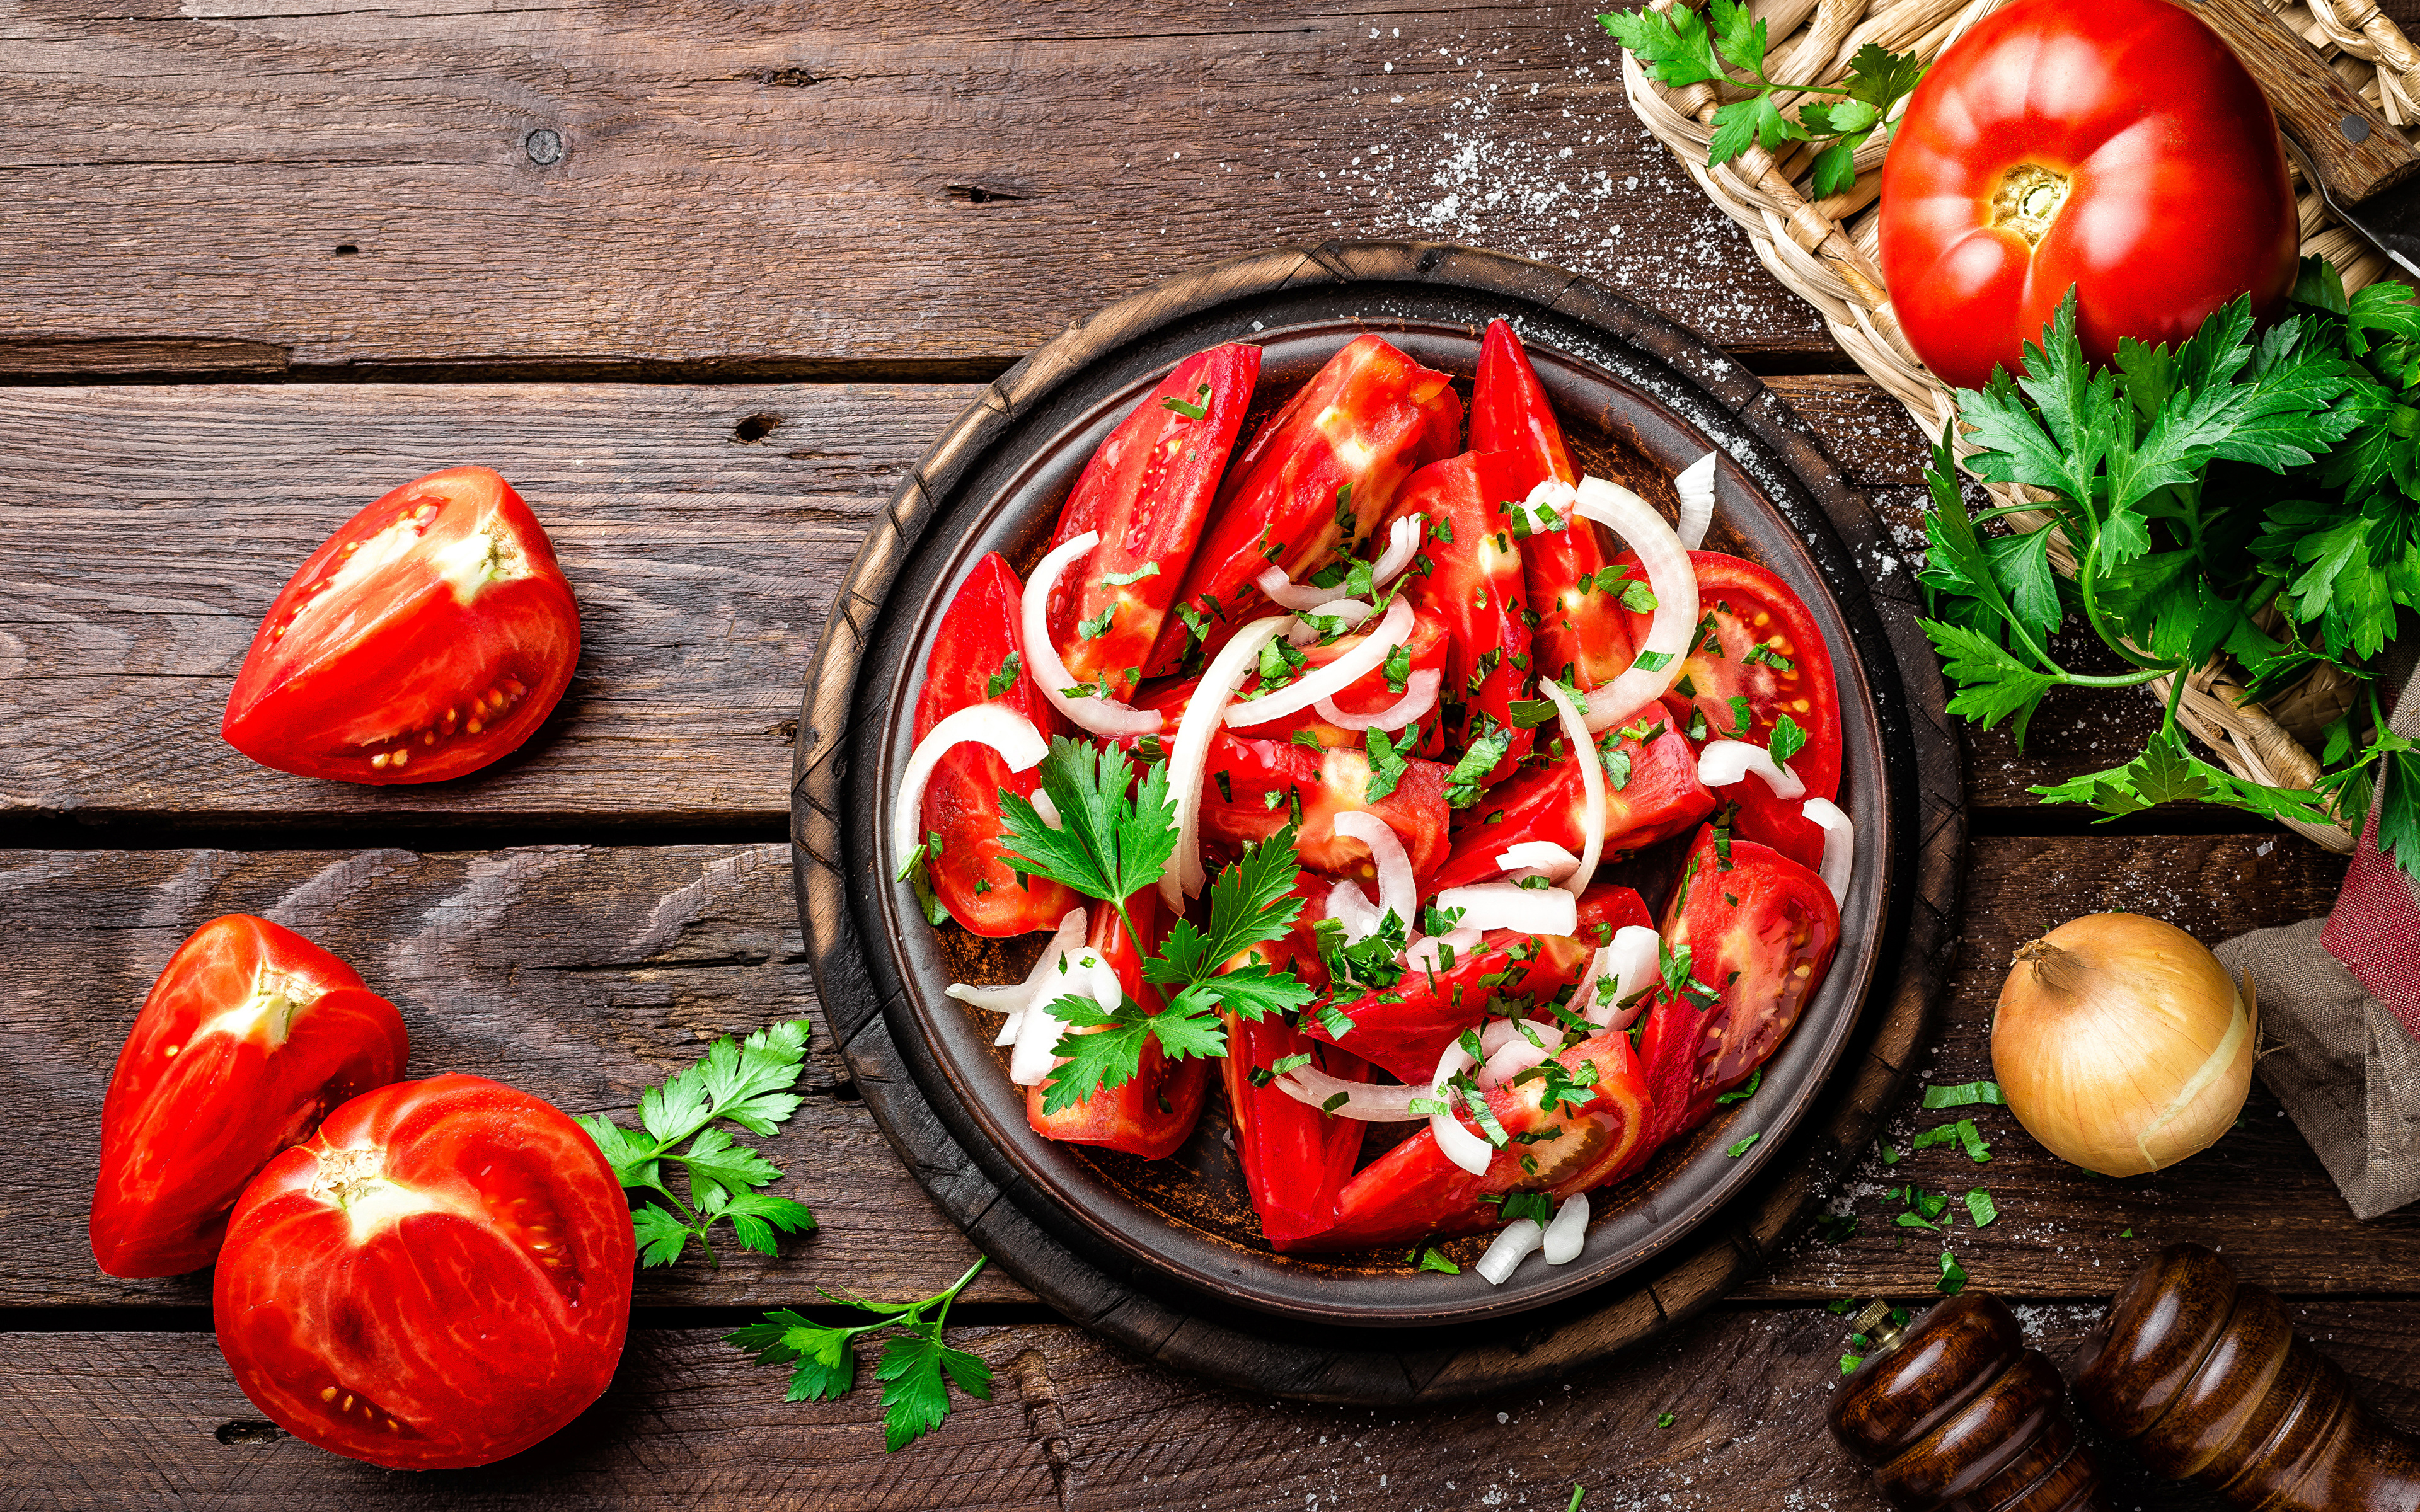 Images Tomatoes Food Salads Vegetables Wood planks 3840x2400 boards